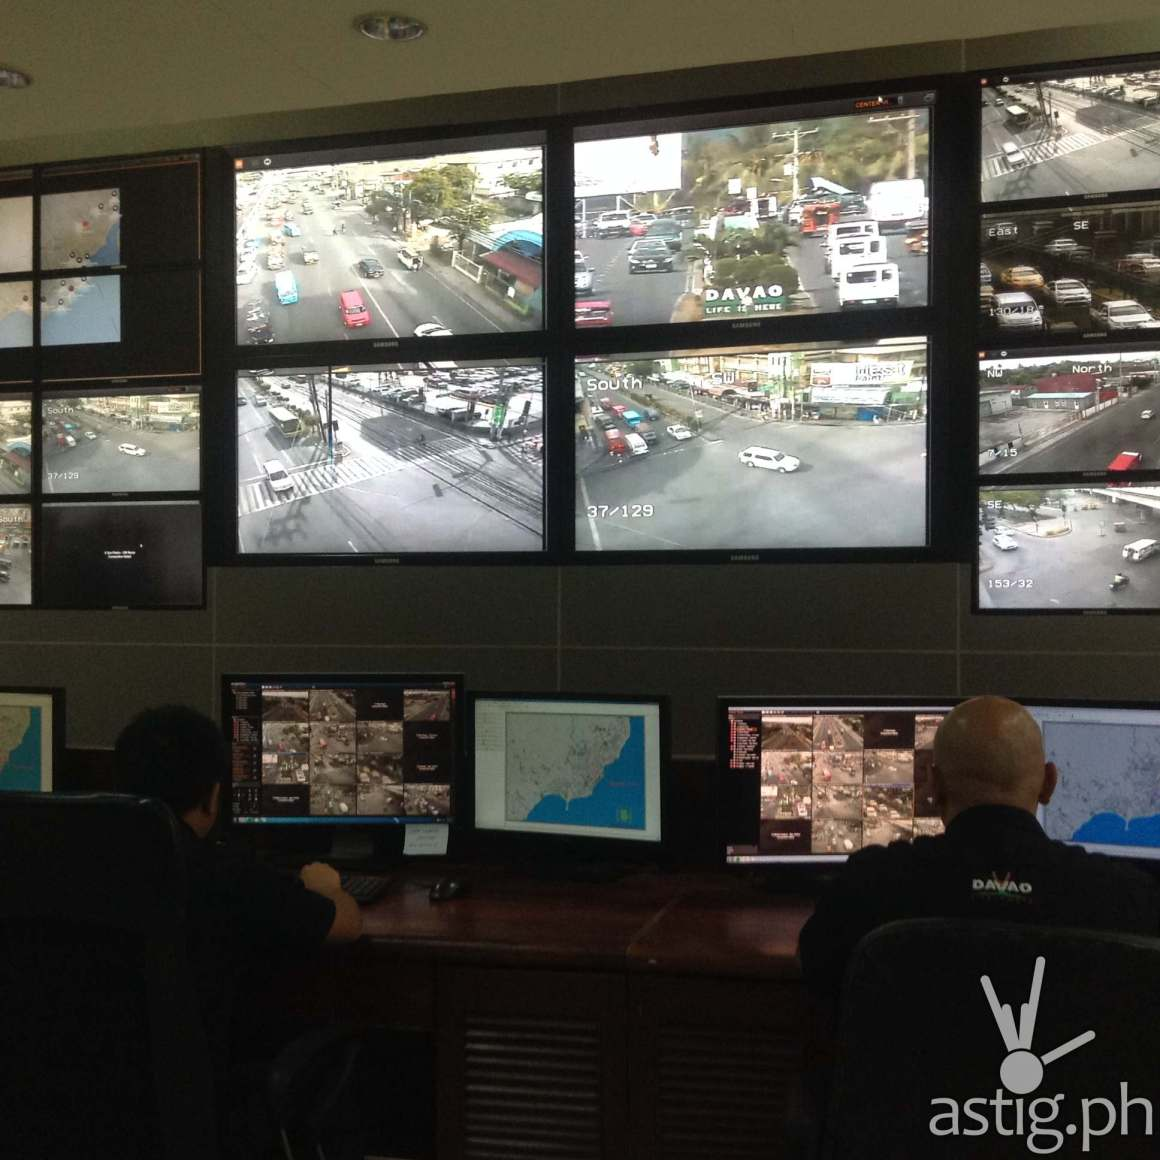 The famed Public Safety and Security Command Center of Davao